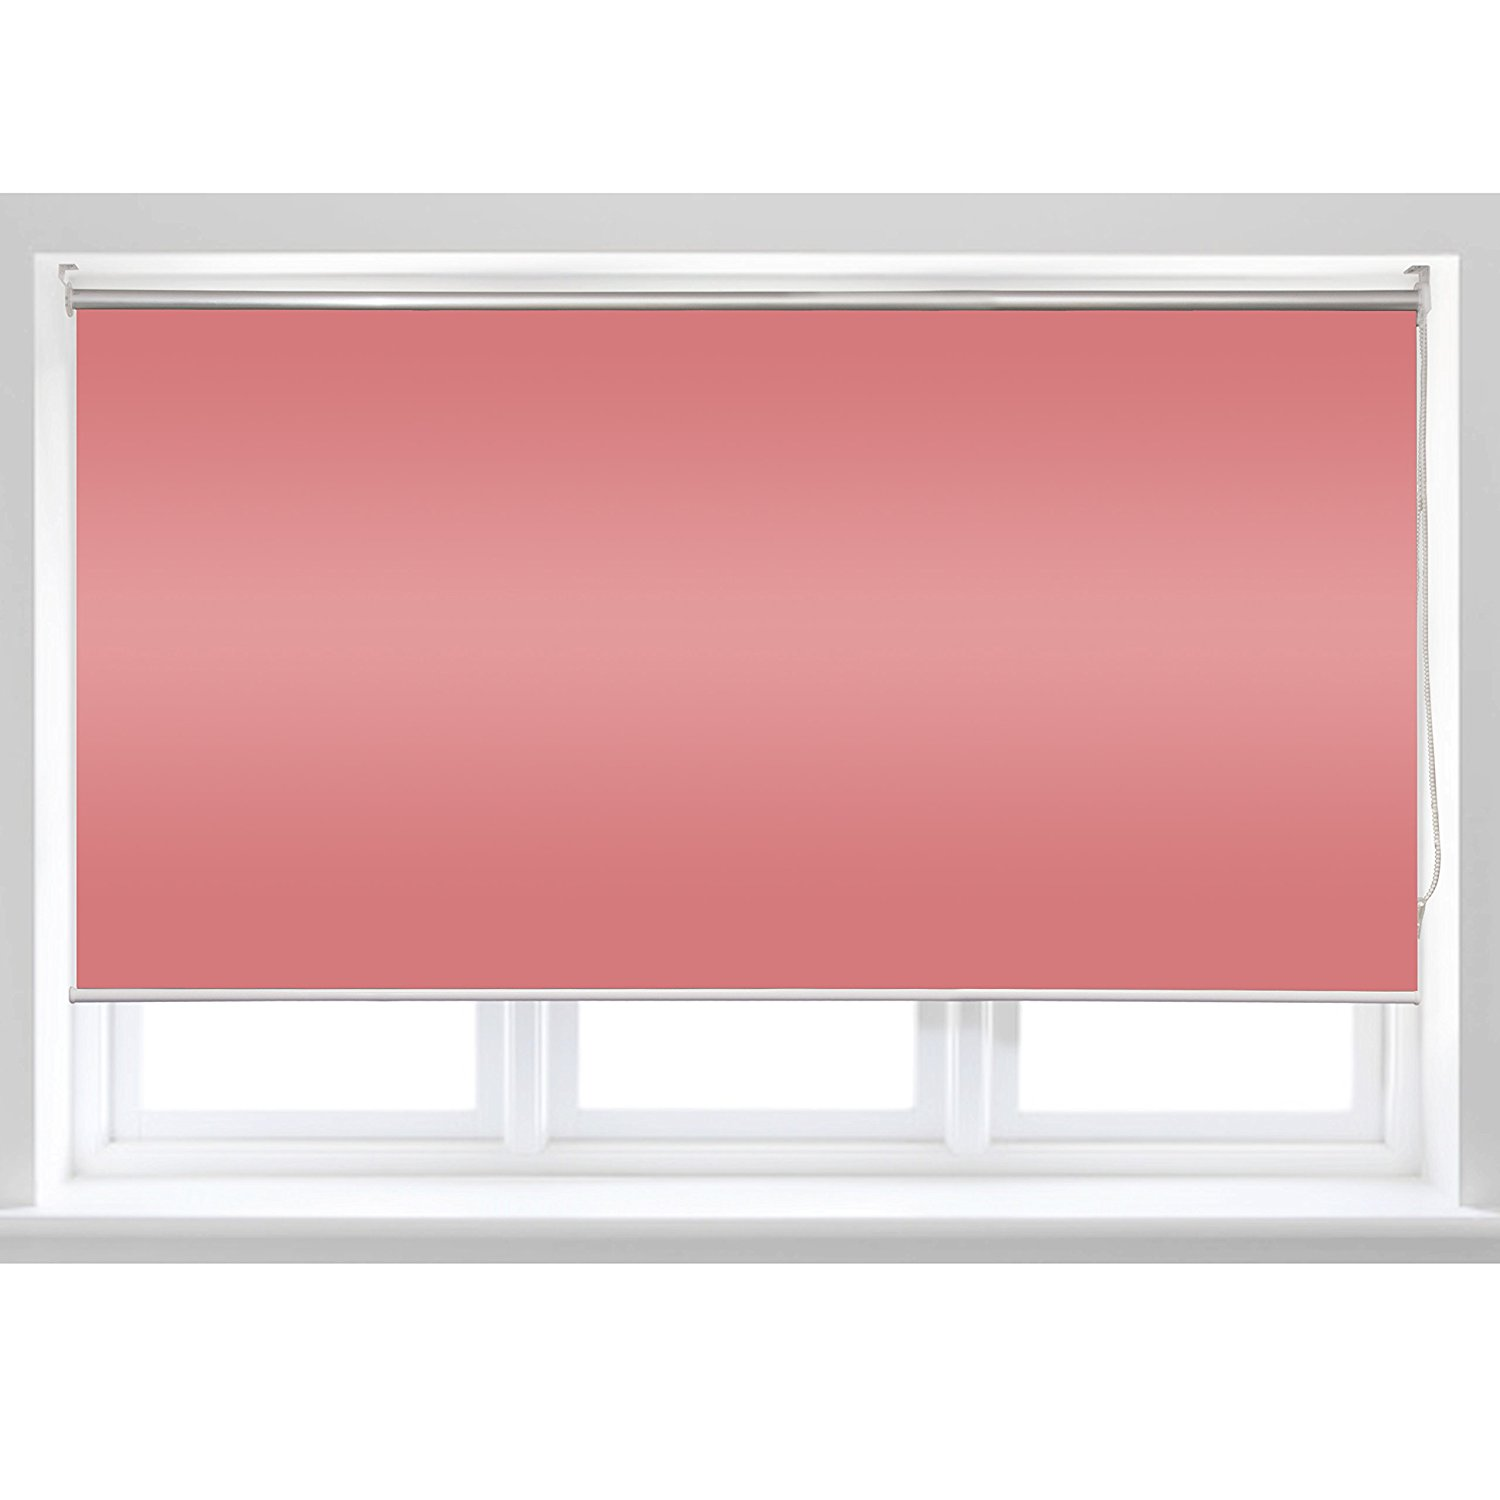 Roll Up Shade Windscreen Sunshade Blinds 96 X 72 Inches, Pink